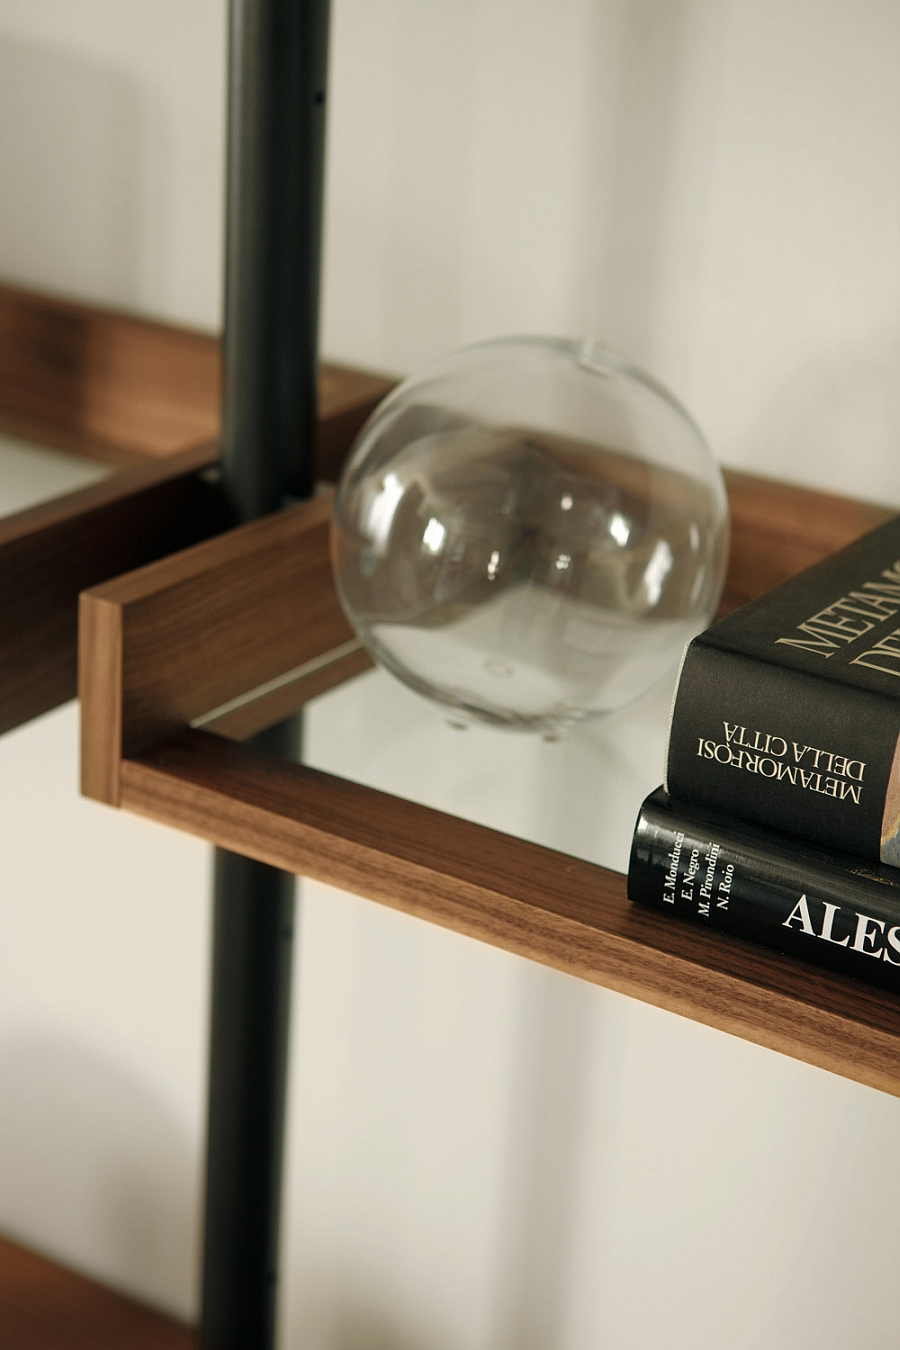 Glass lends lightness to the posh wall shelf unit